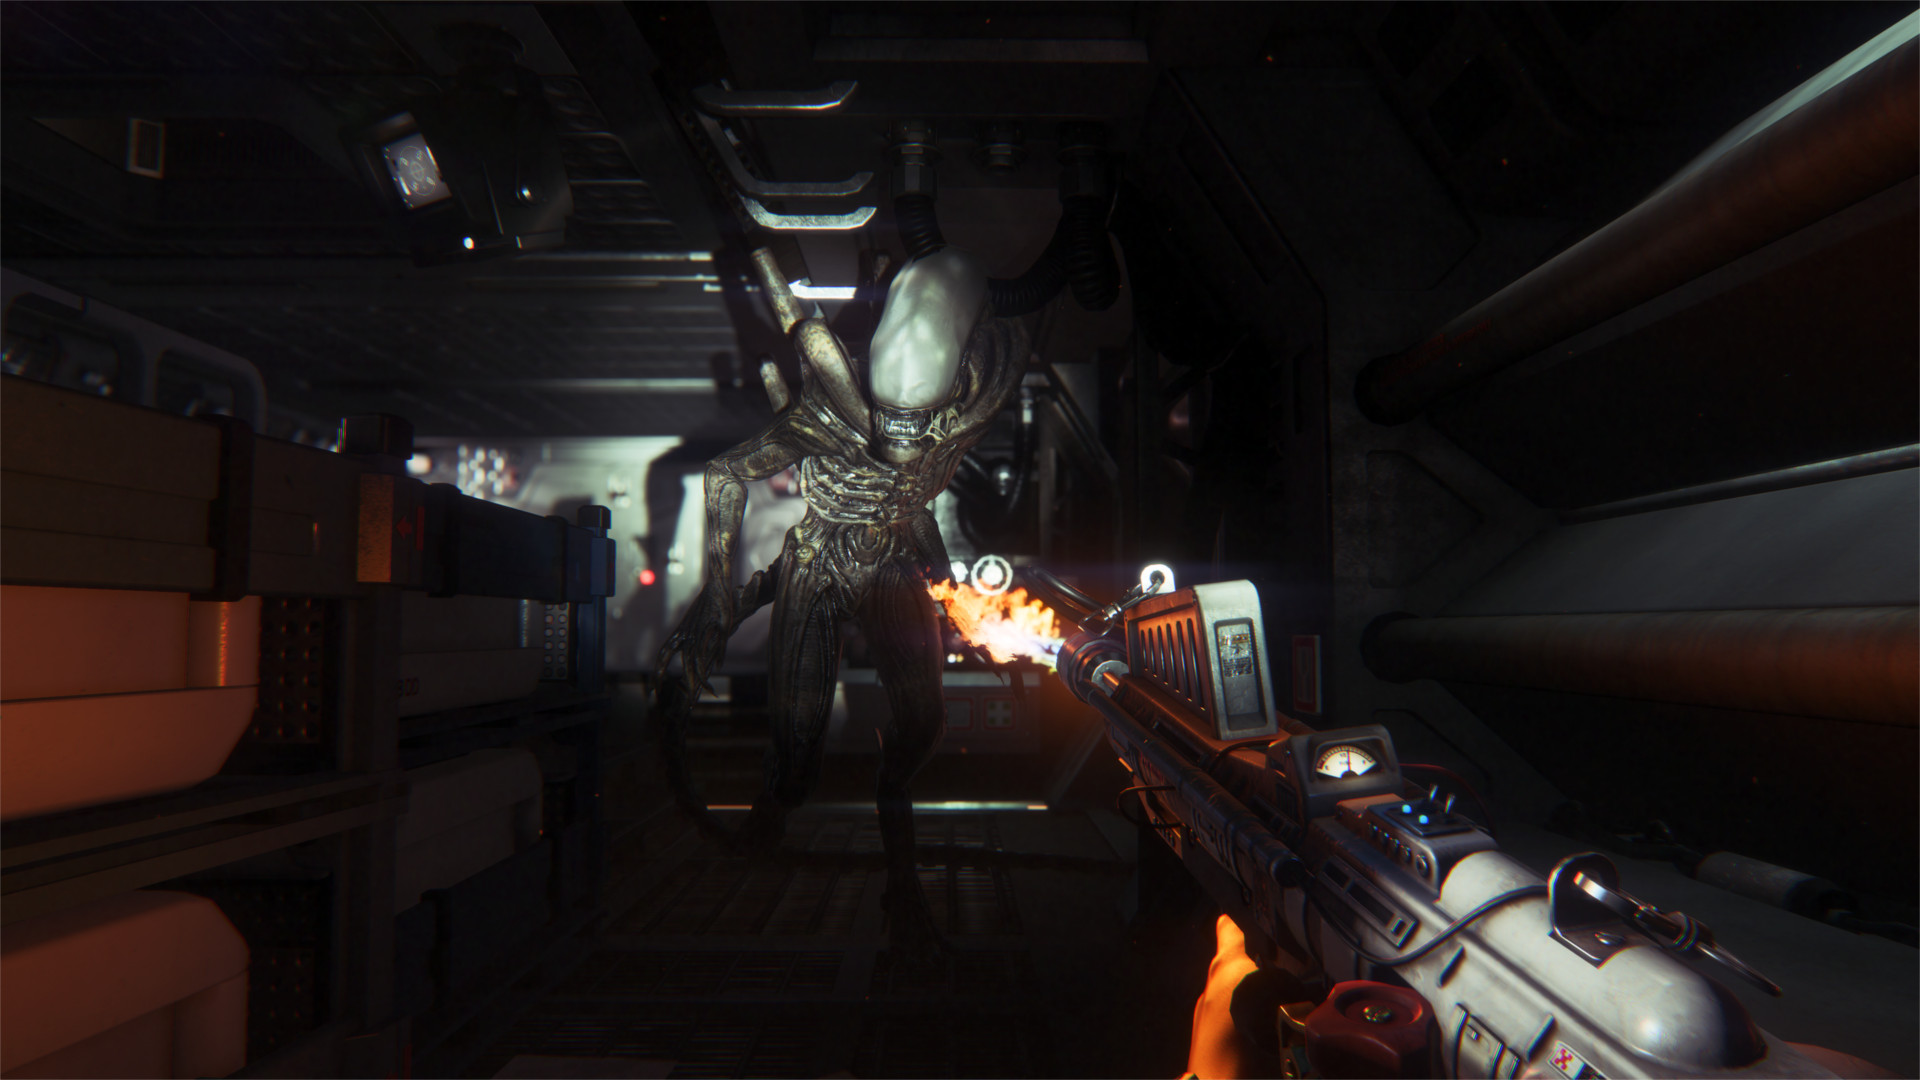 Alien Isolation review flamthrower